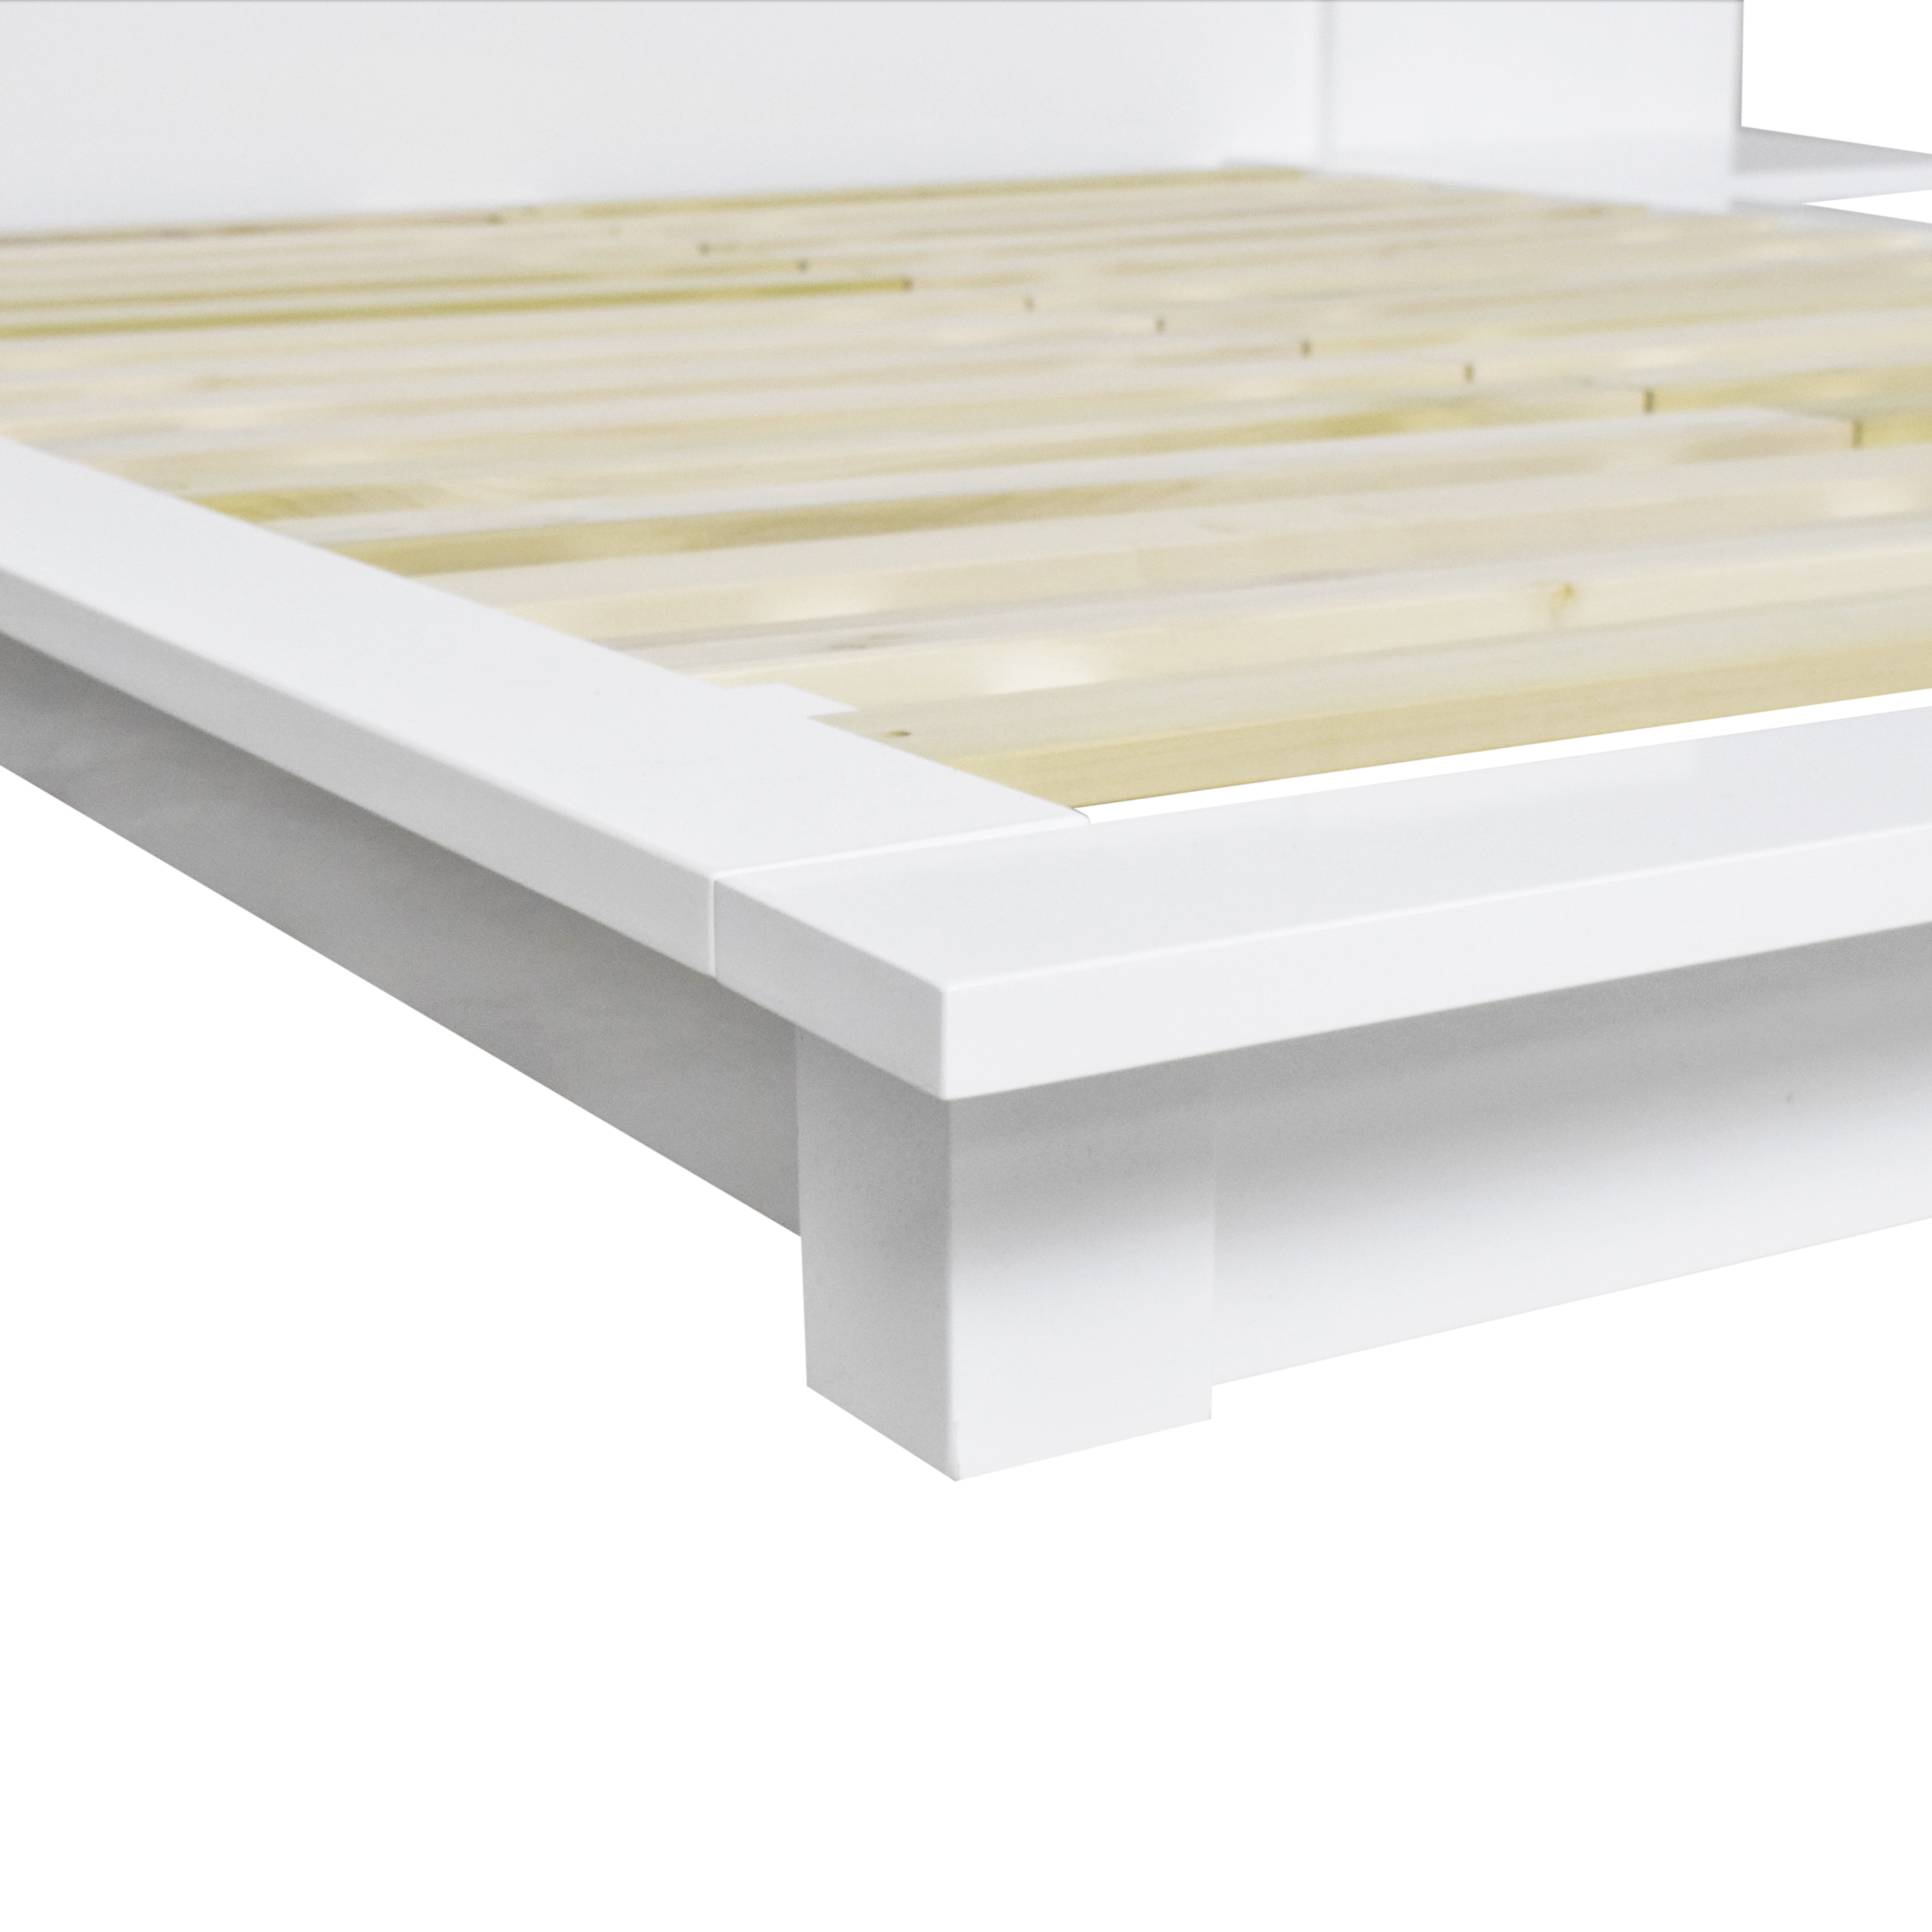 CB2 Andes Queen Bed with Attached Nightstands CB2